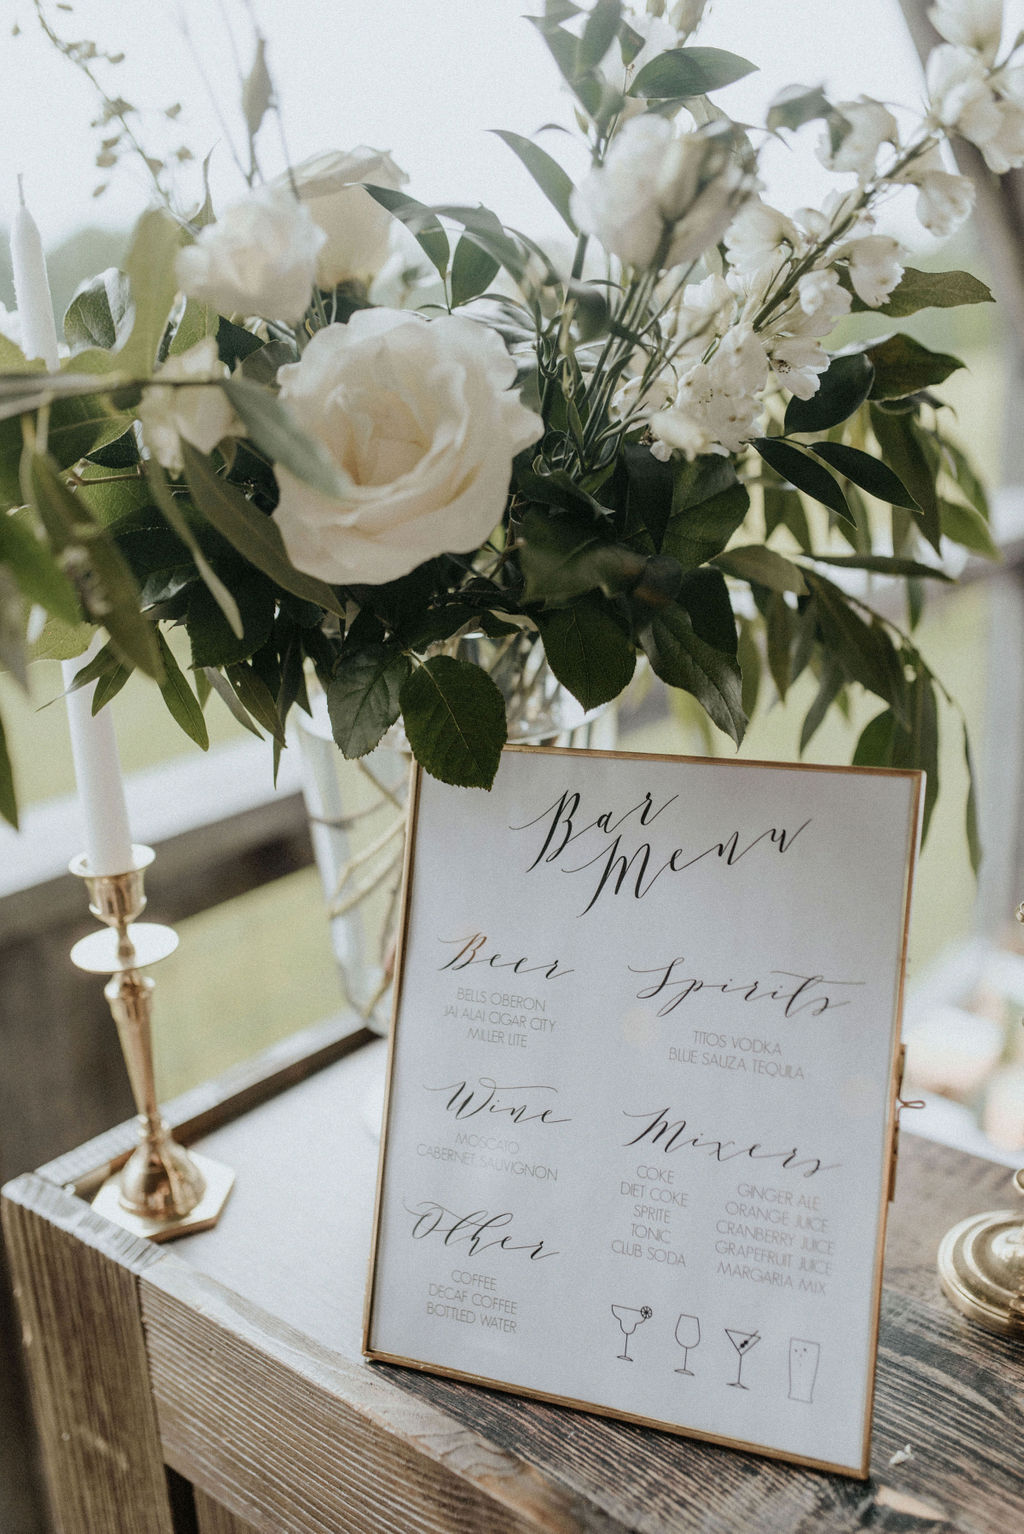 A bar menu with white flowers and greenery.